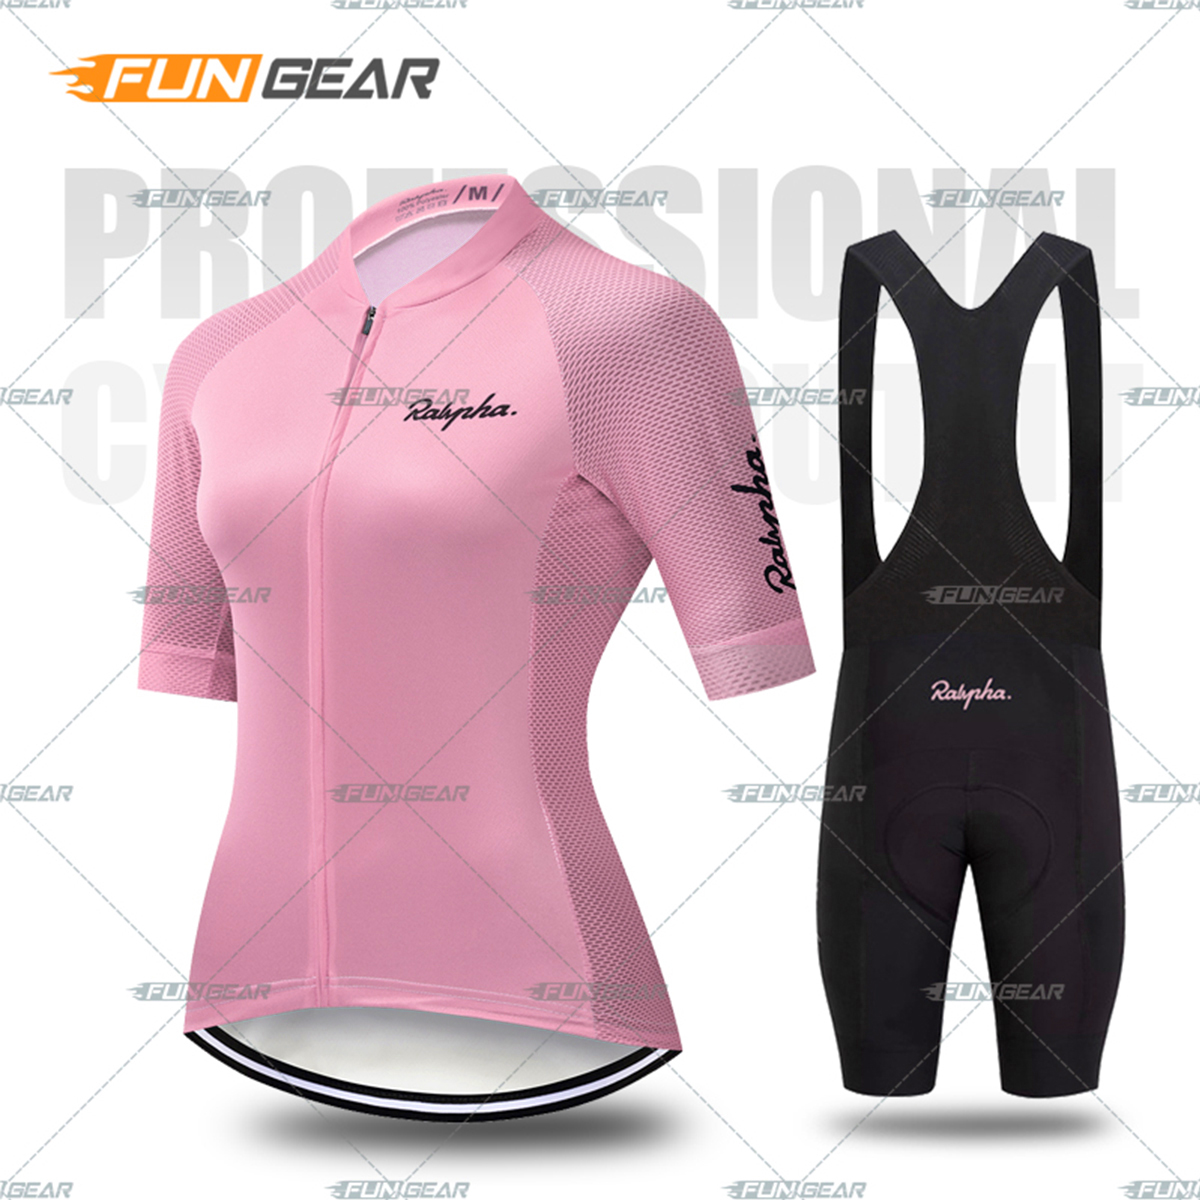 Women Cycling Clothing Bicycle Jersey Set Female Ropa Ciclismo Girl Cycle Casual Wear Road Bike Bib Short Pant Pad Ropa Ciclismo